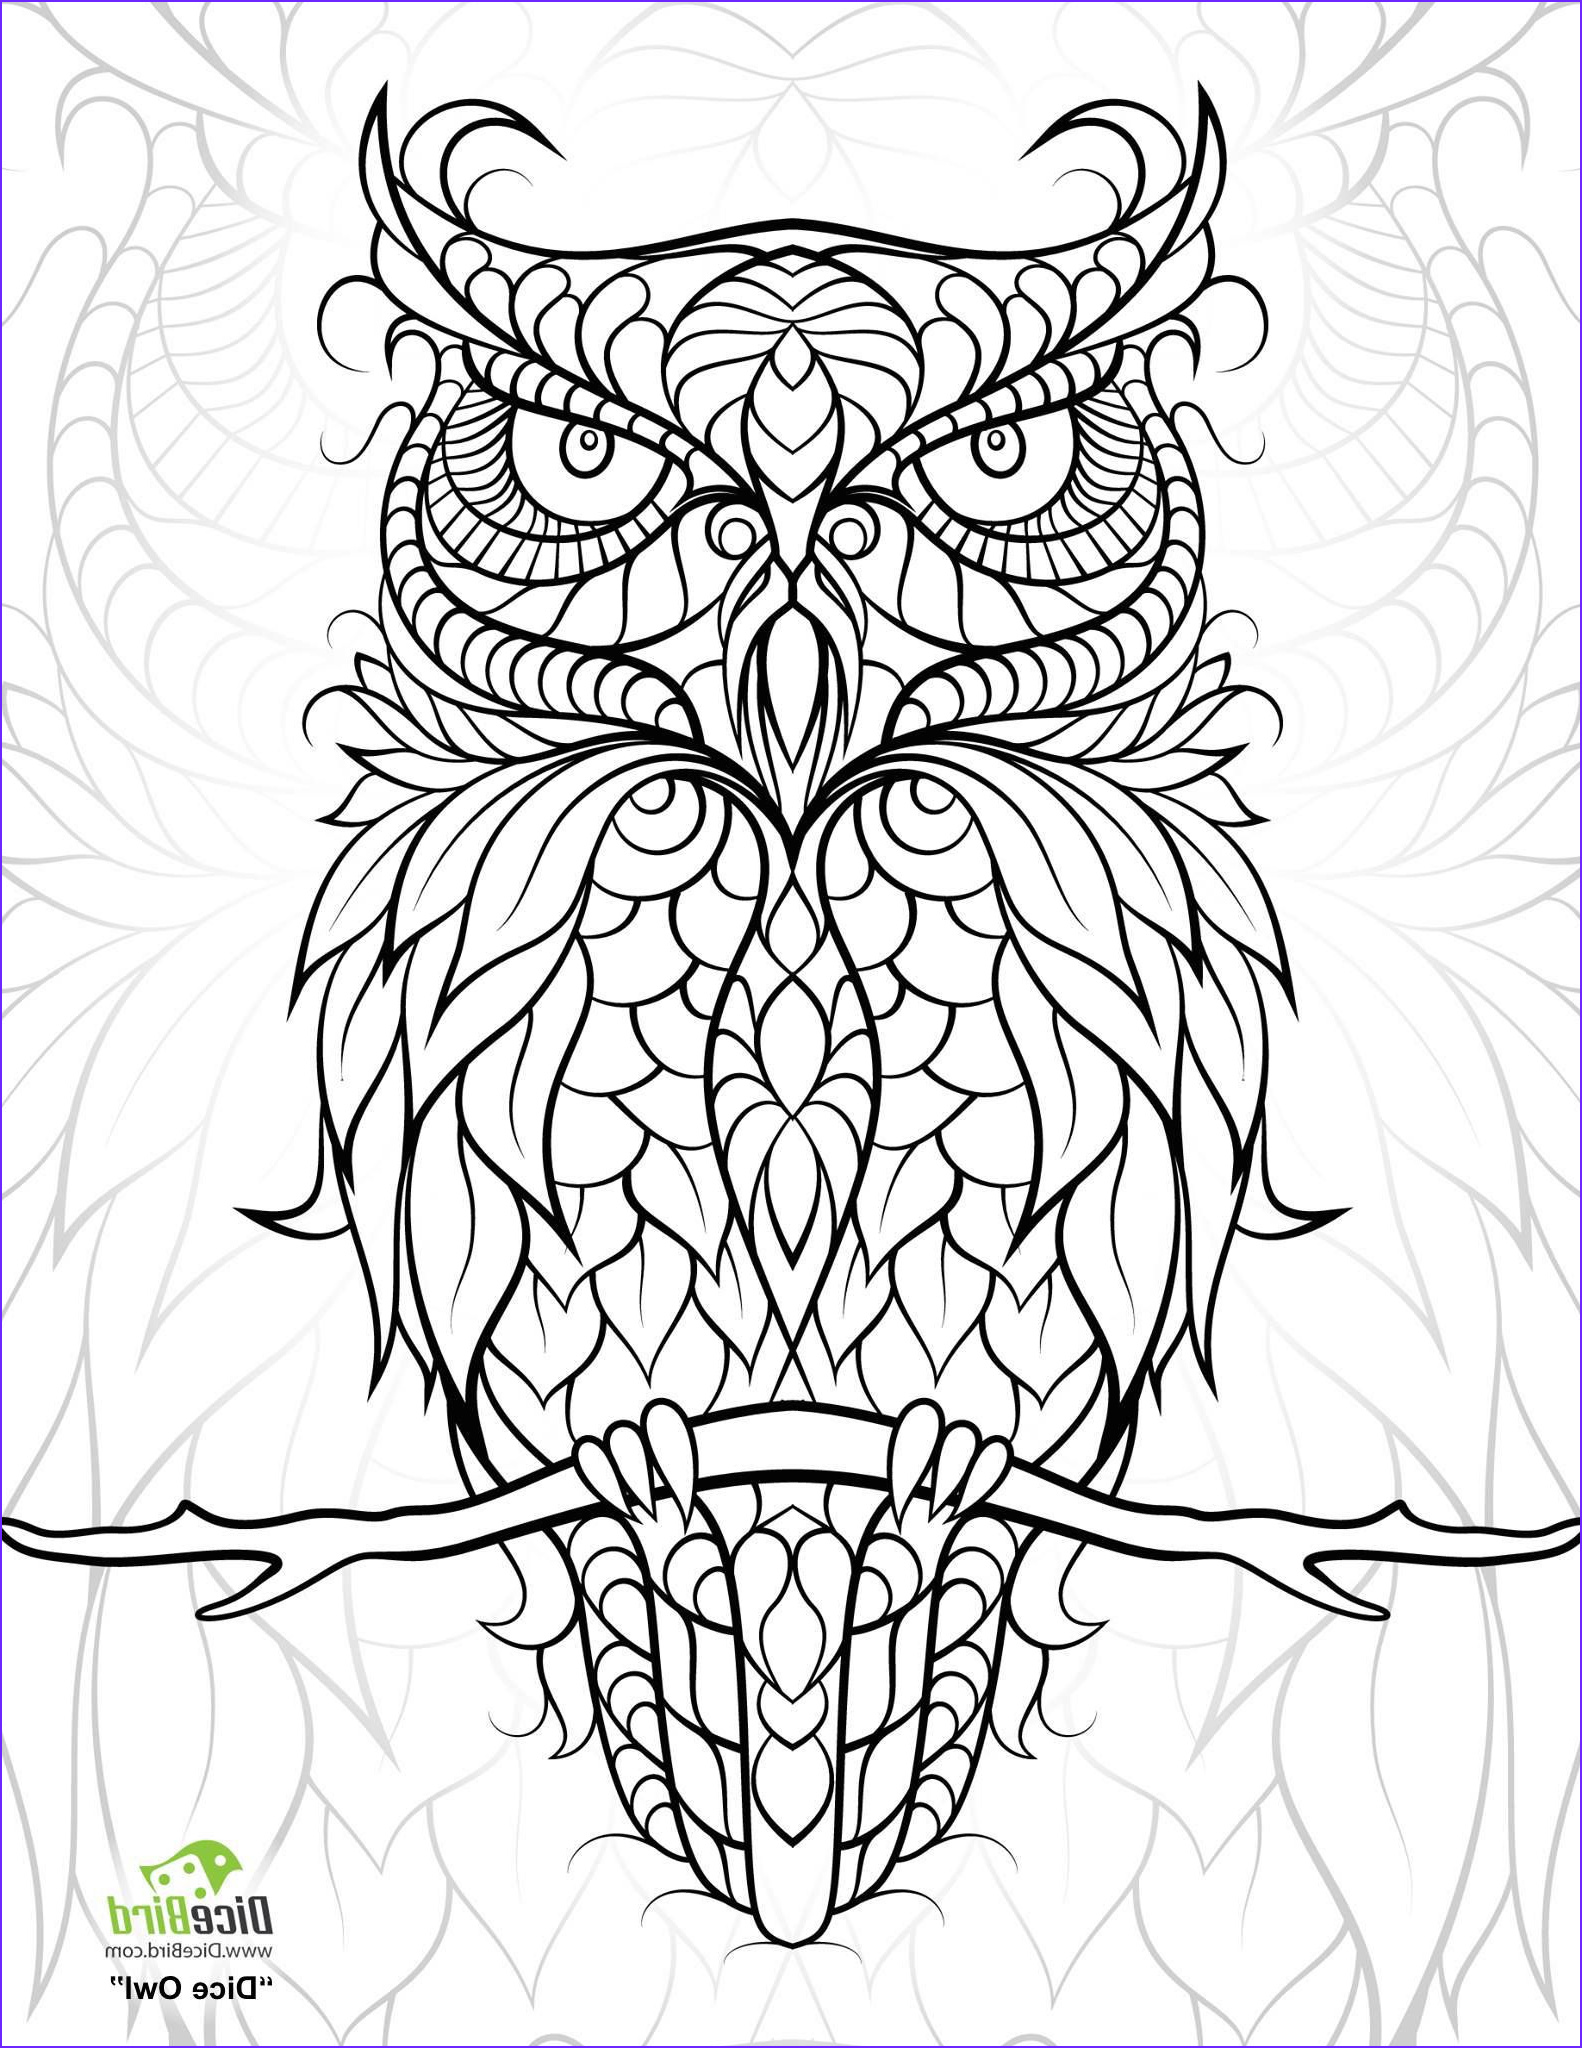 Owl Coloring Pages for Adults Best Of Photos Diceowl Free Printable Adult Coloring Pages